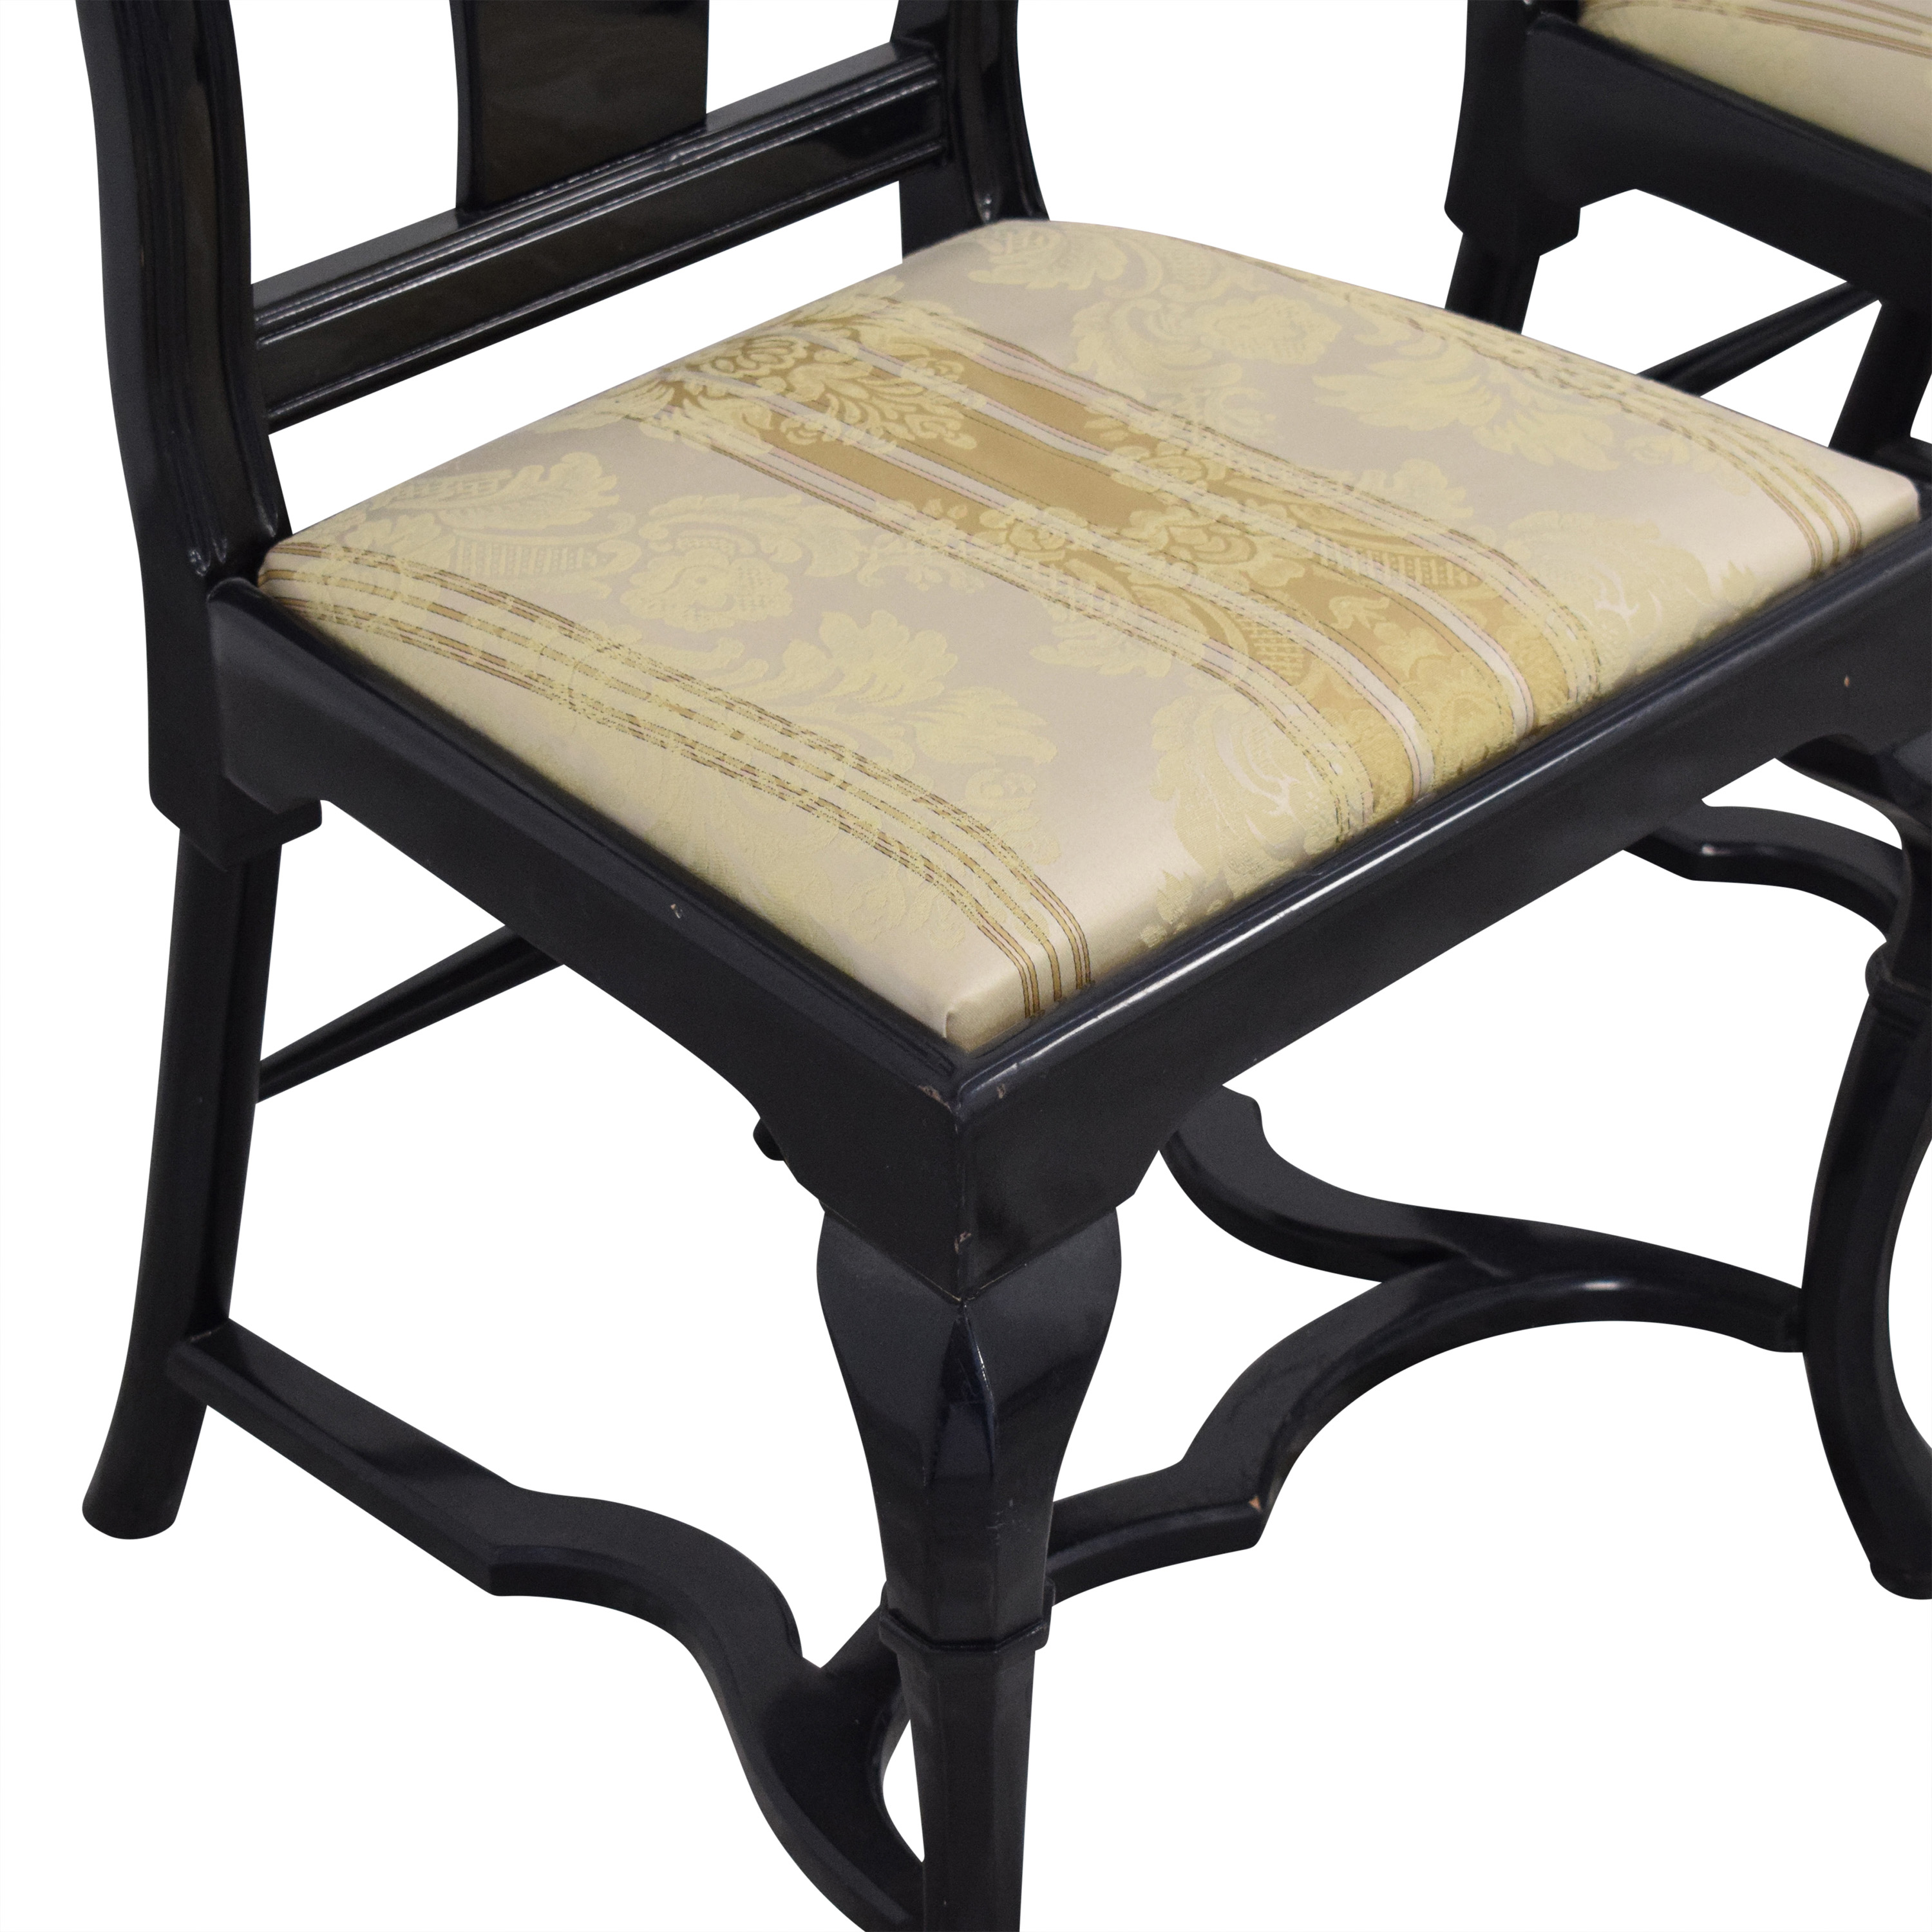 Upholstered Dining Chairs used